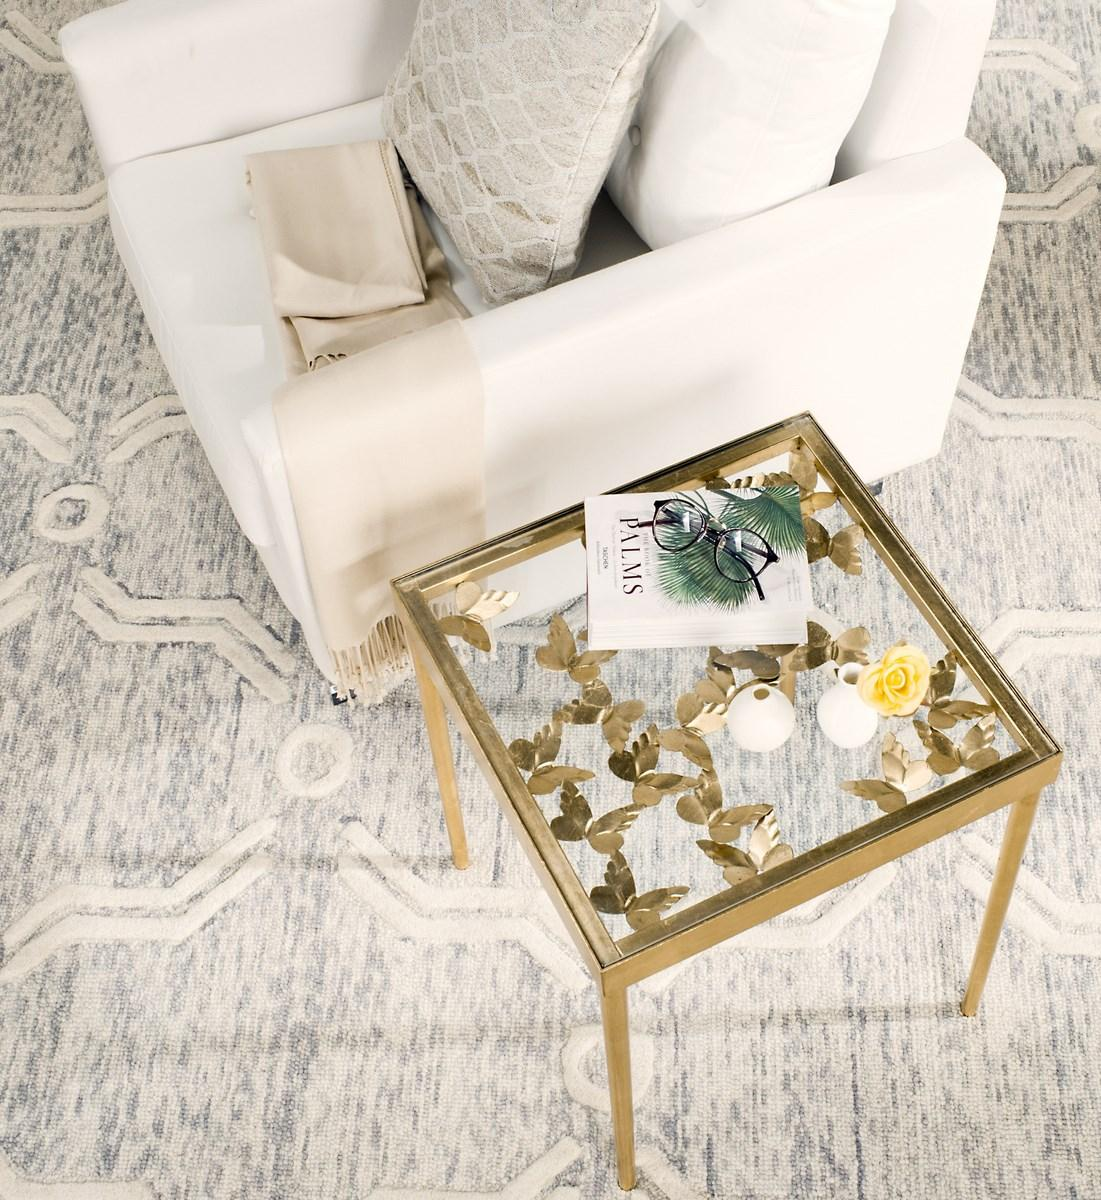 accent tables furniture safavieh room butterfly glass table rosalia side design metal coffee and end small round mirror calgary gray drawer chest antique that folds out clearance